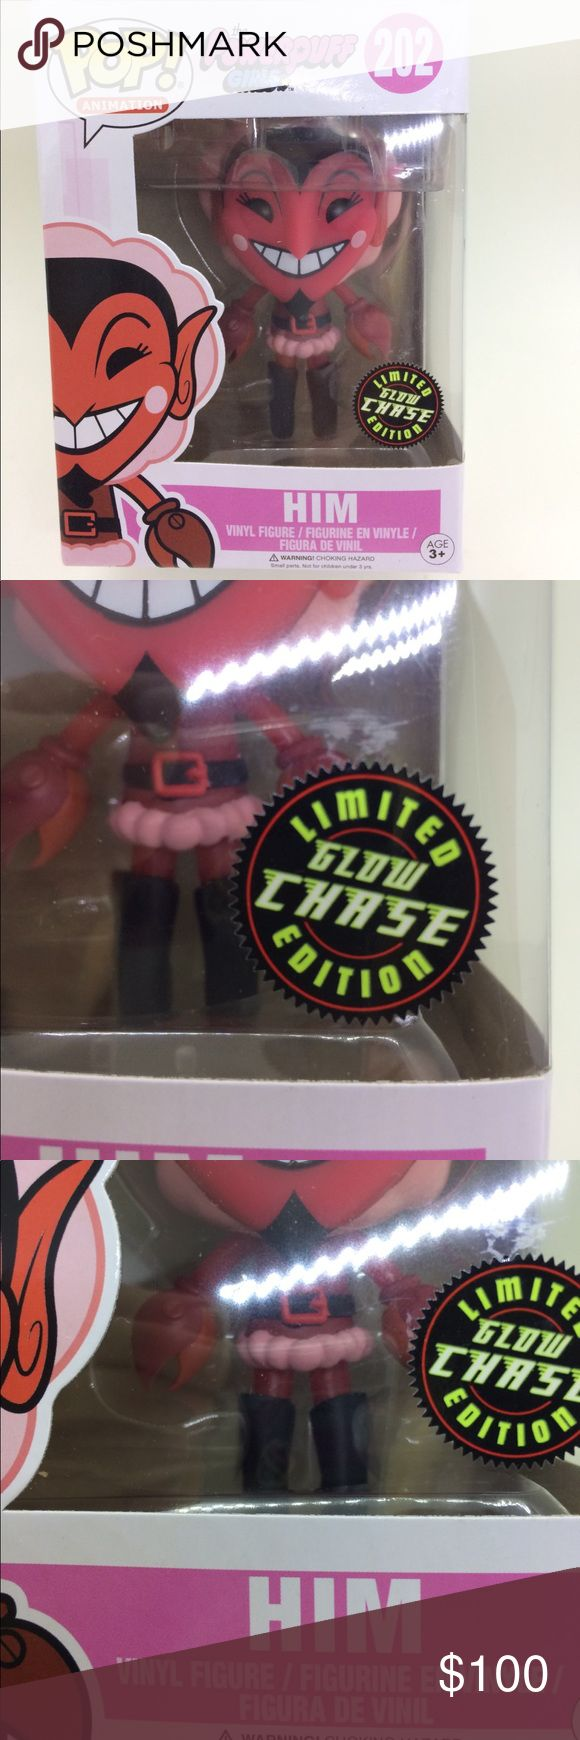 "CHASE LIMITED EDITION GLOW IN THE DARK FUNKO POP NIB.  NM.  NWT.  Limited Edition.  CHASE.  Glow in the Dark Funko Pop 202 ""Him"" from ""The Powerpuff Girls""!  ULTRA RARE!  Perfect gift for a fan or collector! FUNKO Other"